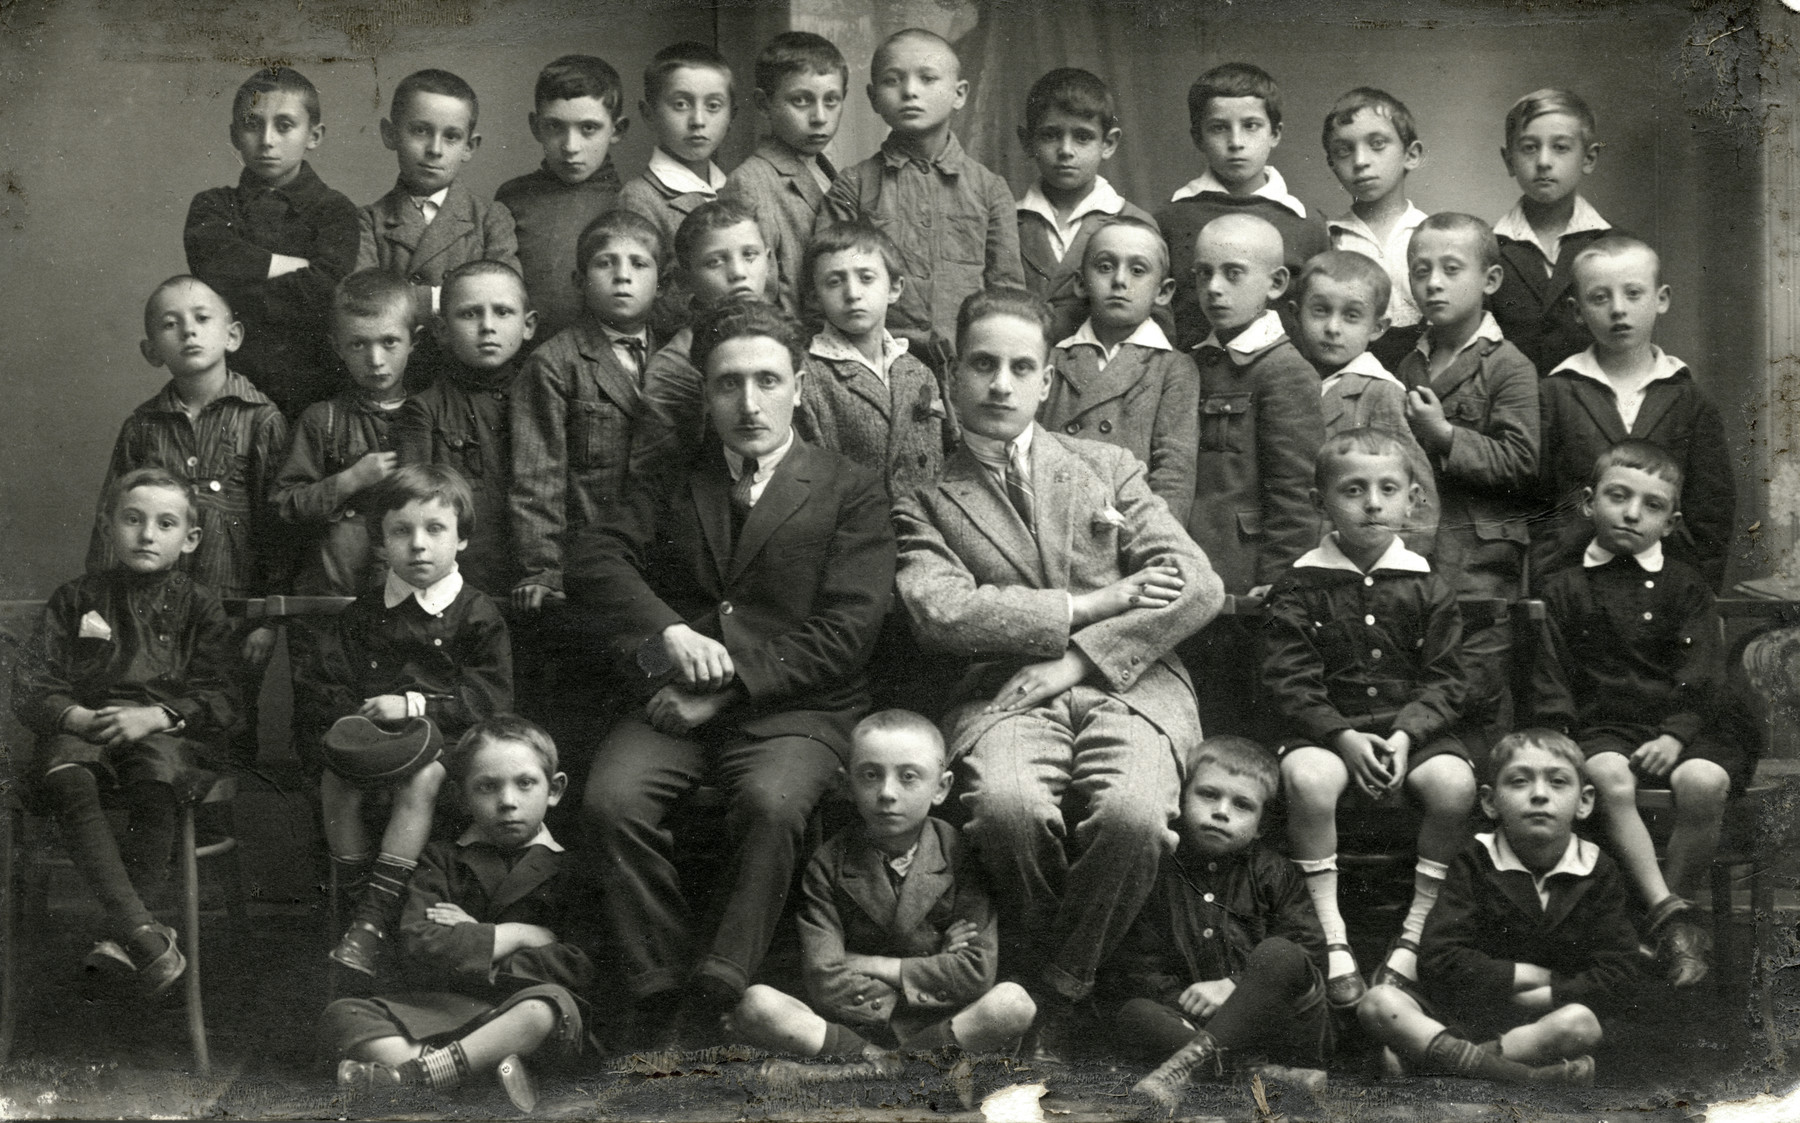 A group photograph of a private Jewish elementary school class in Kielce.  Chaim Leichter is pictured in the second row, fourth from the left.